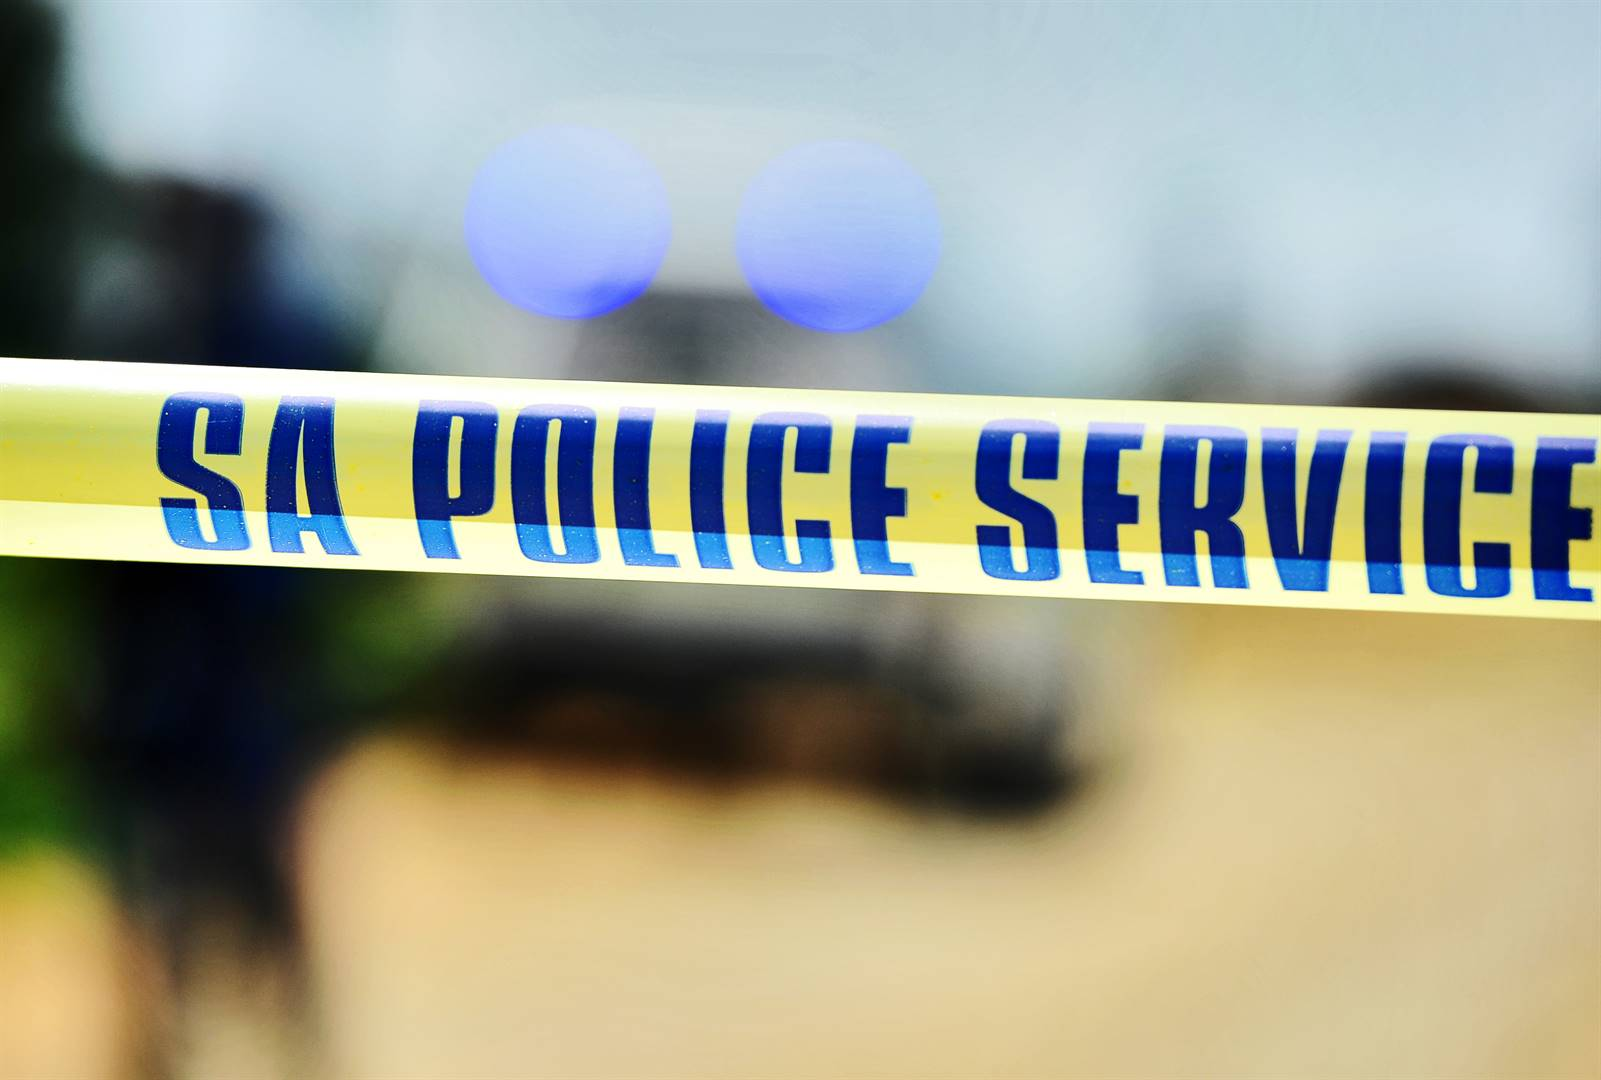 More than 2000 Gauteng SAPS vehicles out of service